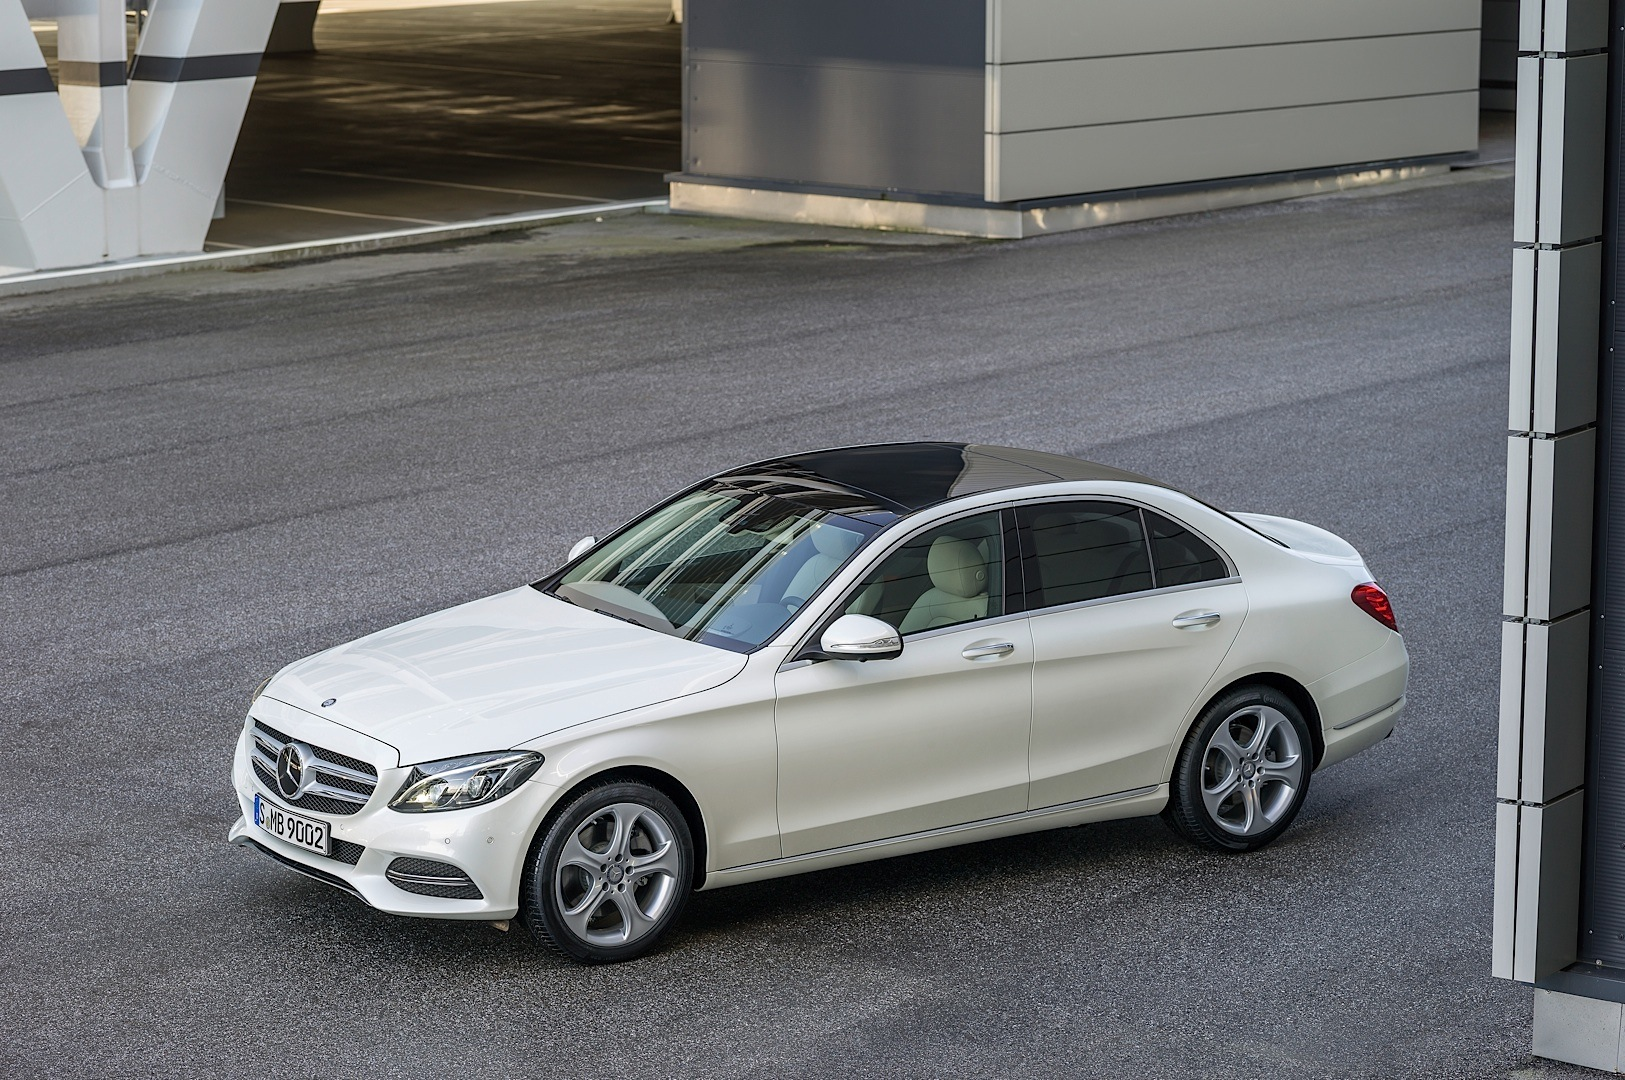 check-out-the-first-official-footage-with-the-new-c-class-w205-video-1080p-56